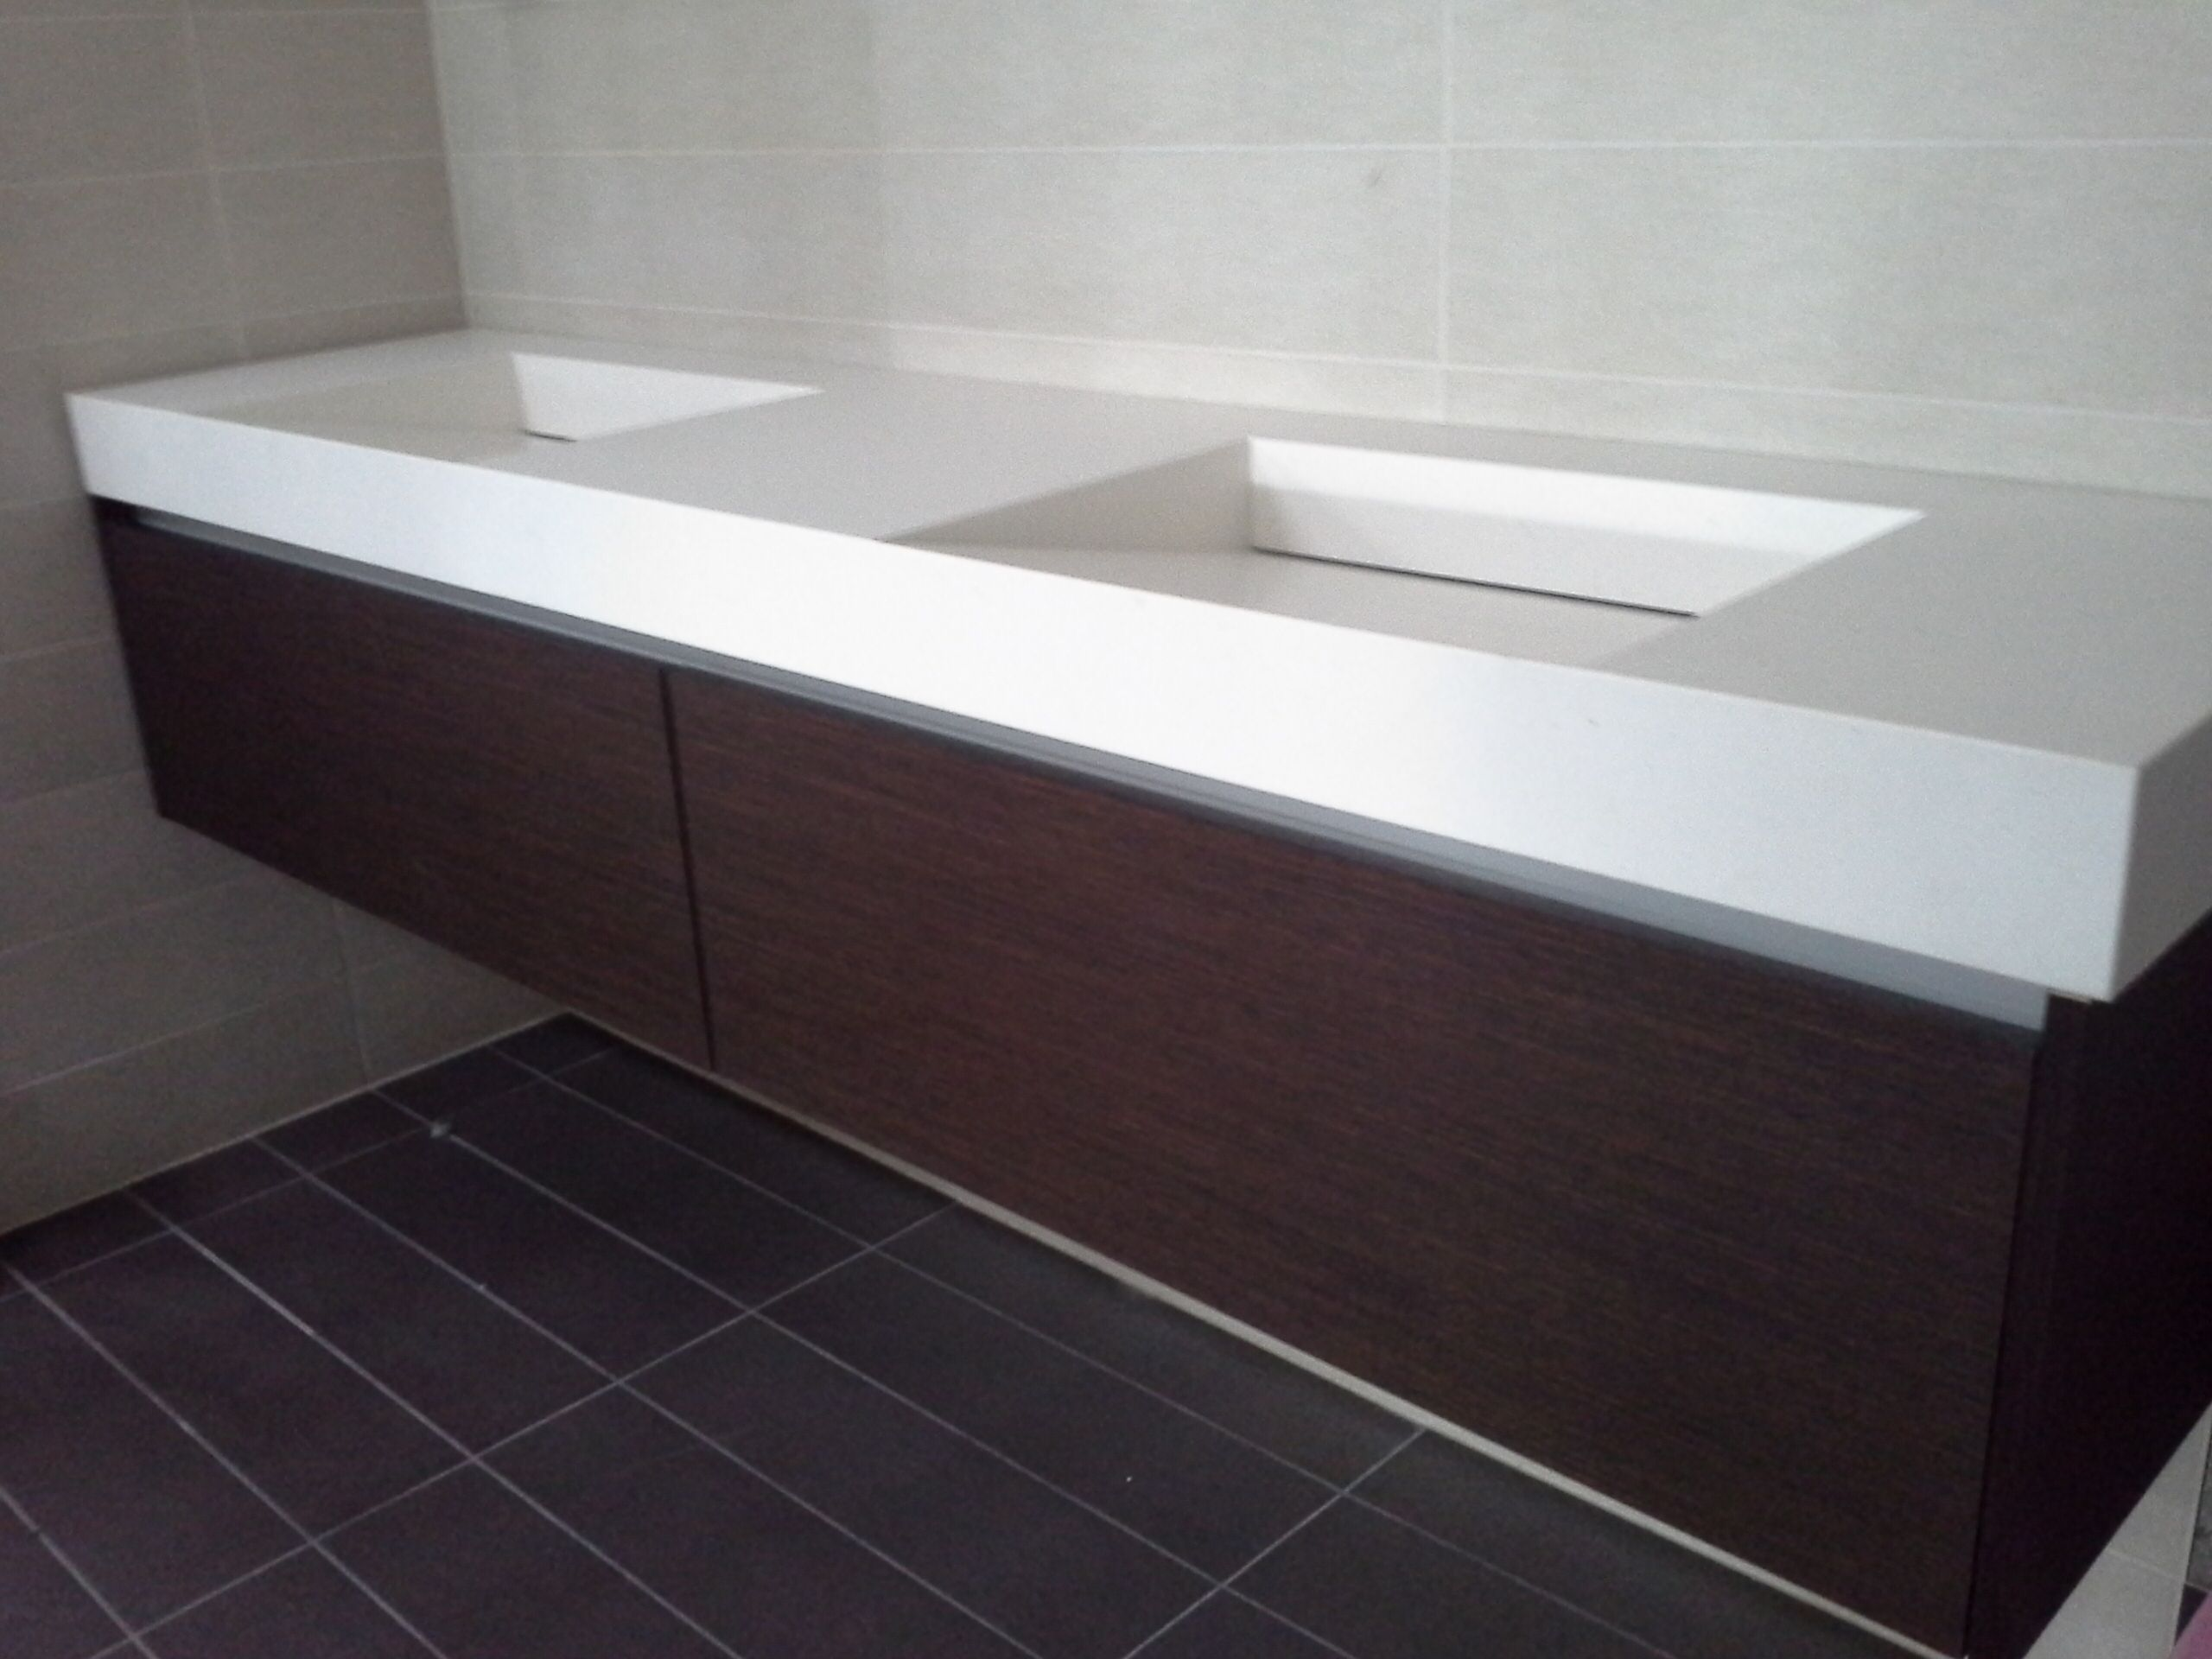 Corian Countertops With Integrated Sink Floating Vanity White Corian Top With Integrated Sinks